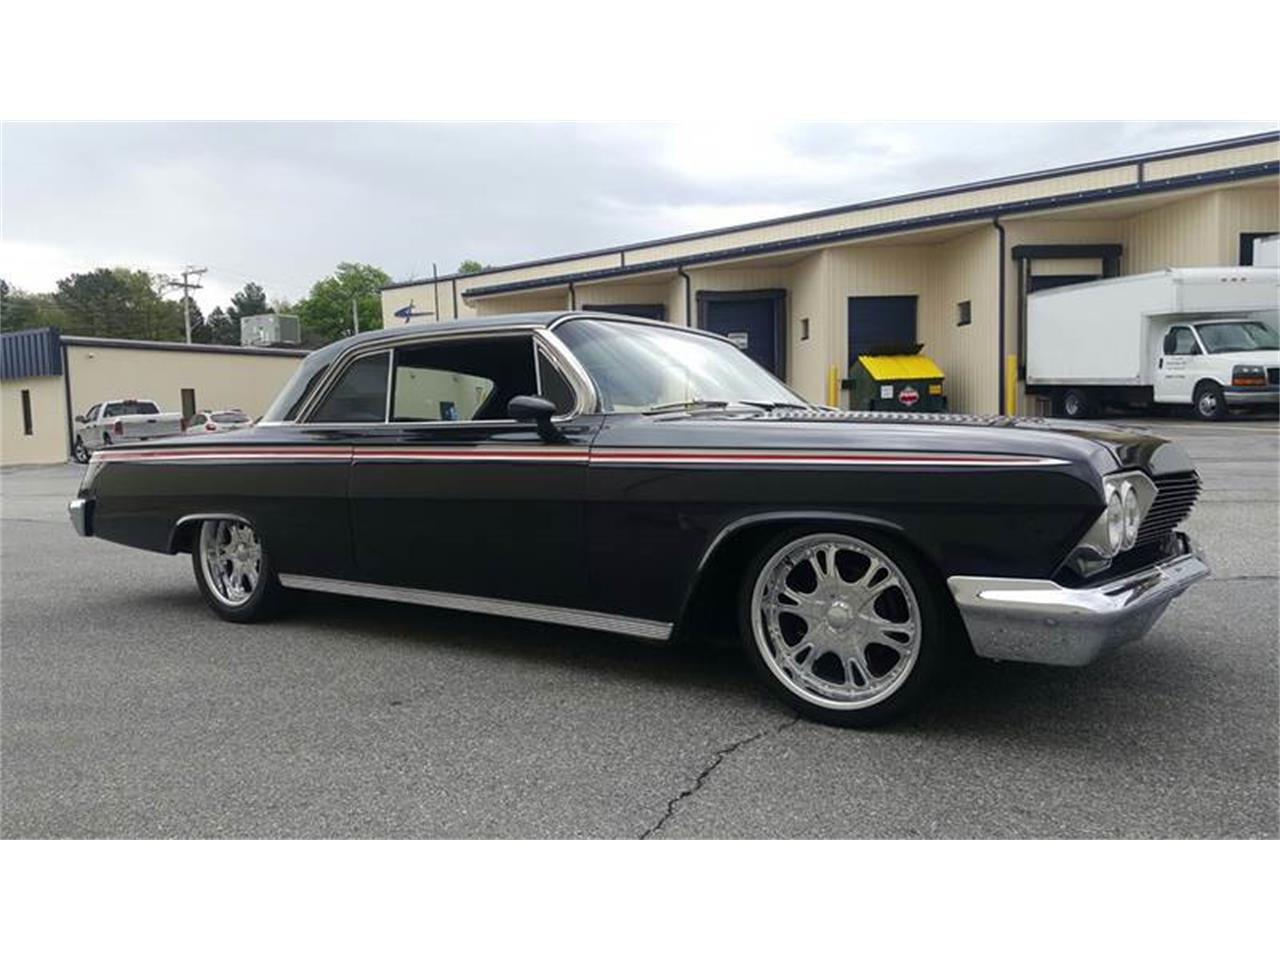 1962 Chevrolet Impala (CC-1242864) for sale in Clarksburg, Maryland